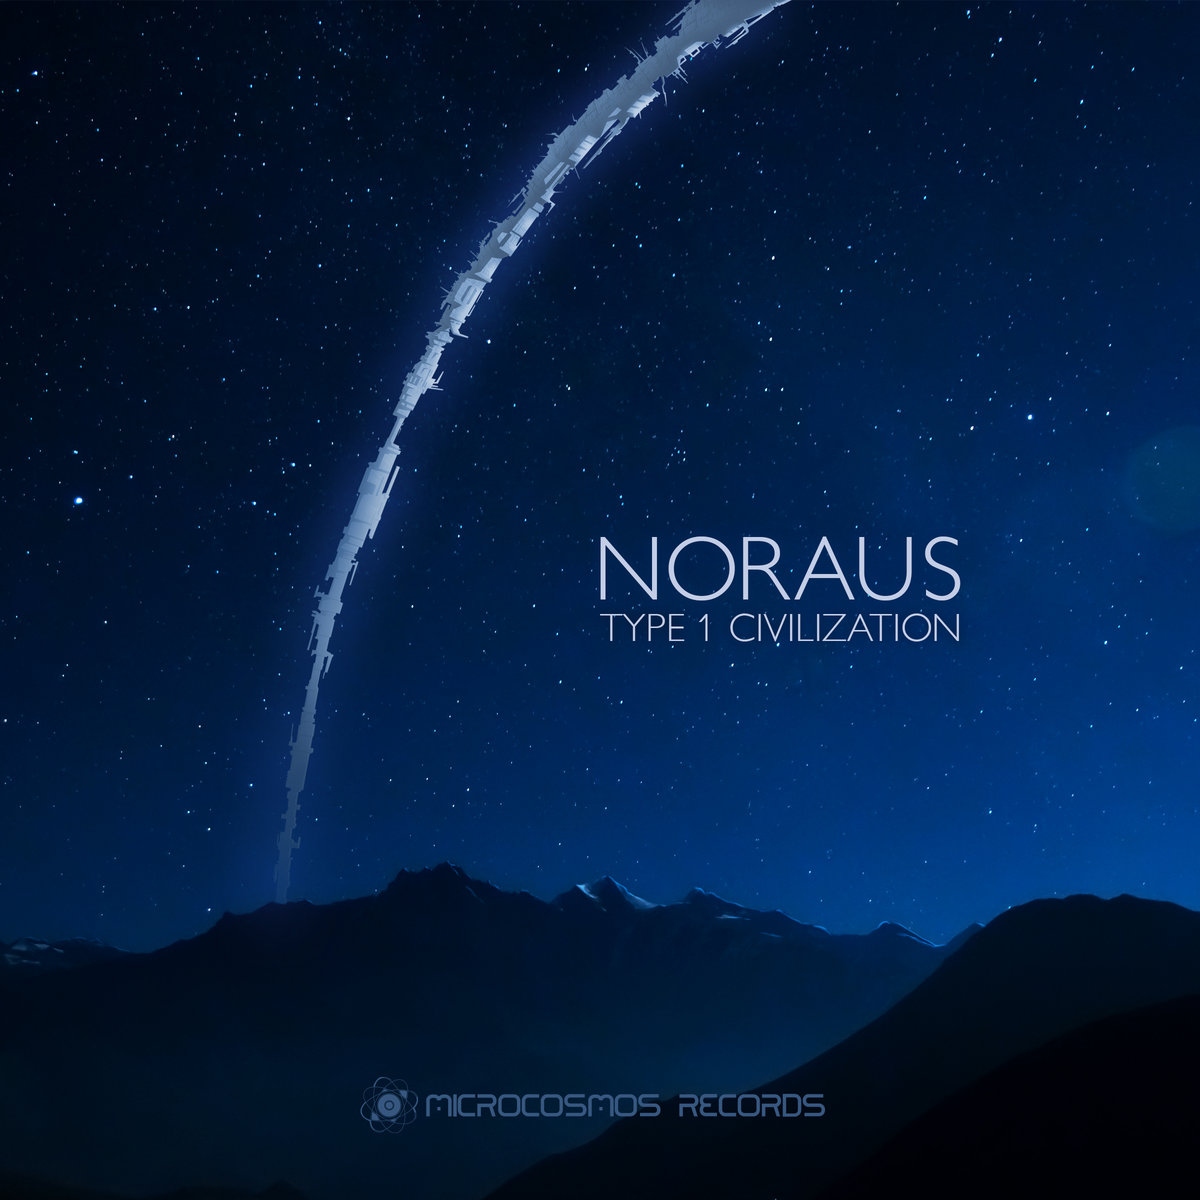 Noraus - Ungooma @ 'Type 1 Civilization' album (ambient, chill-out)